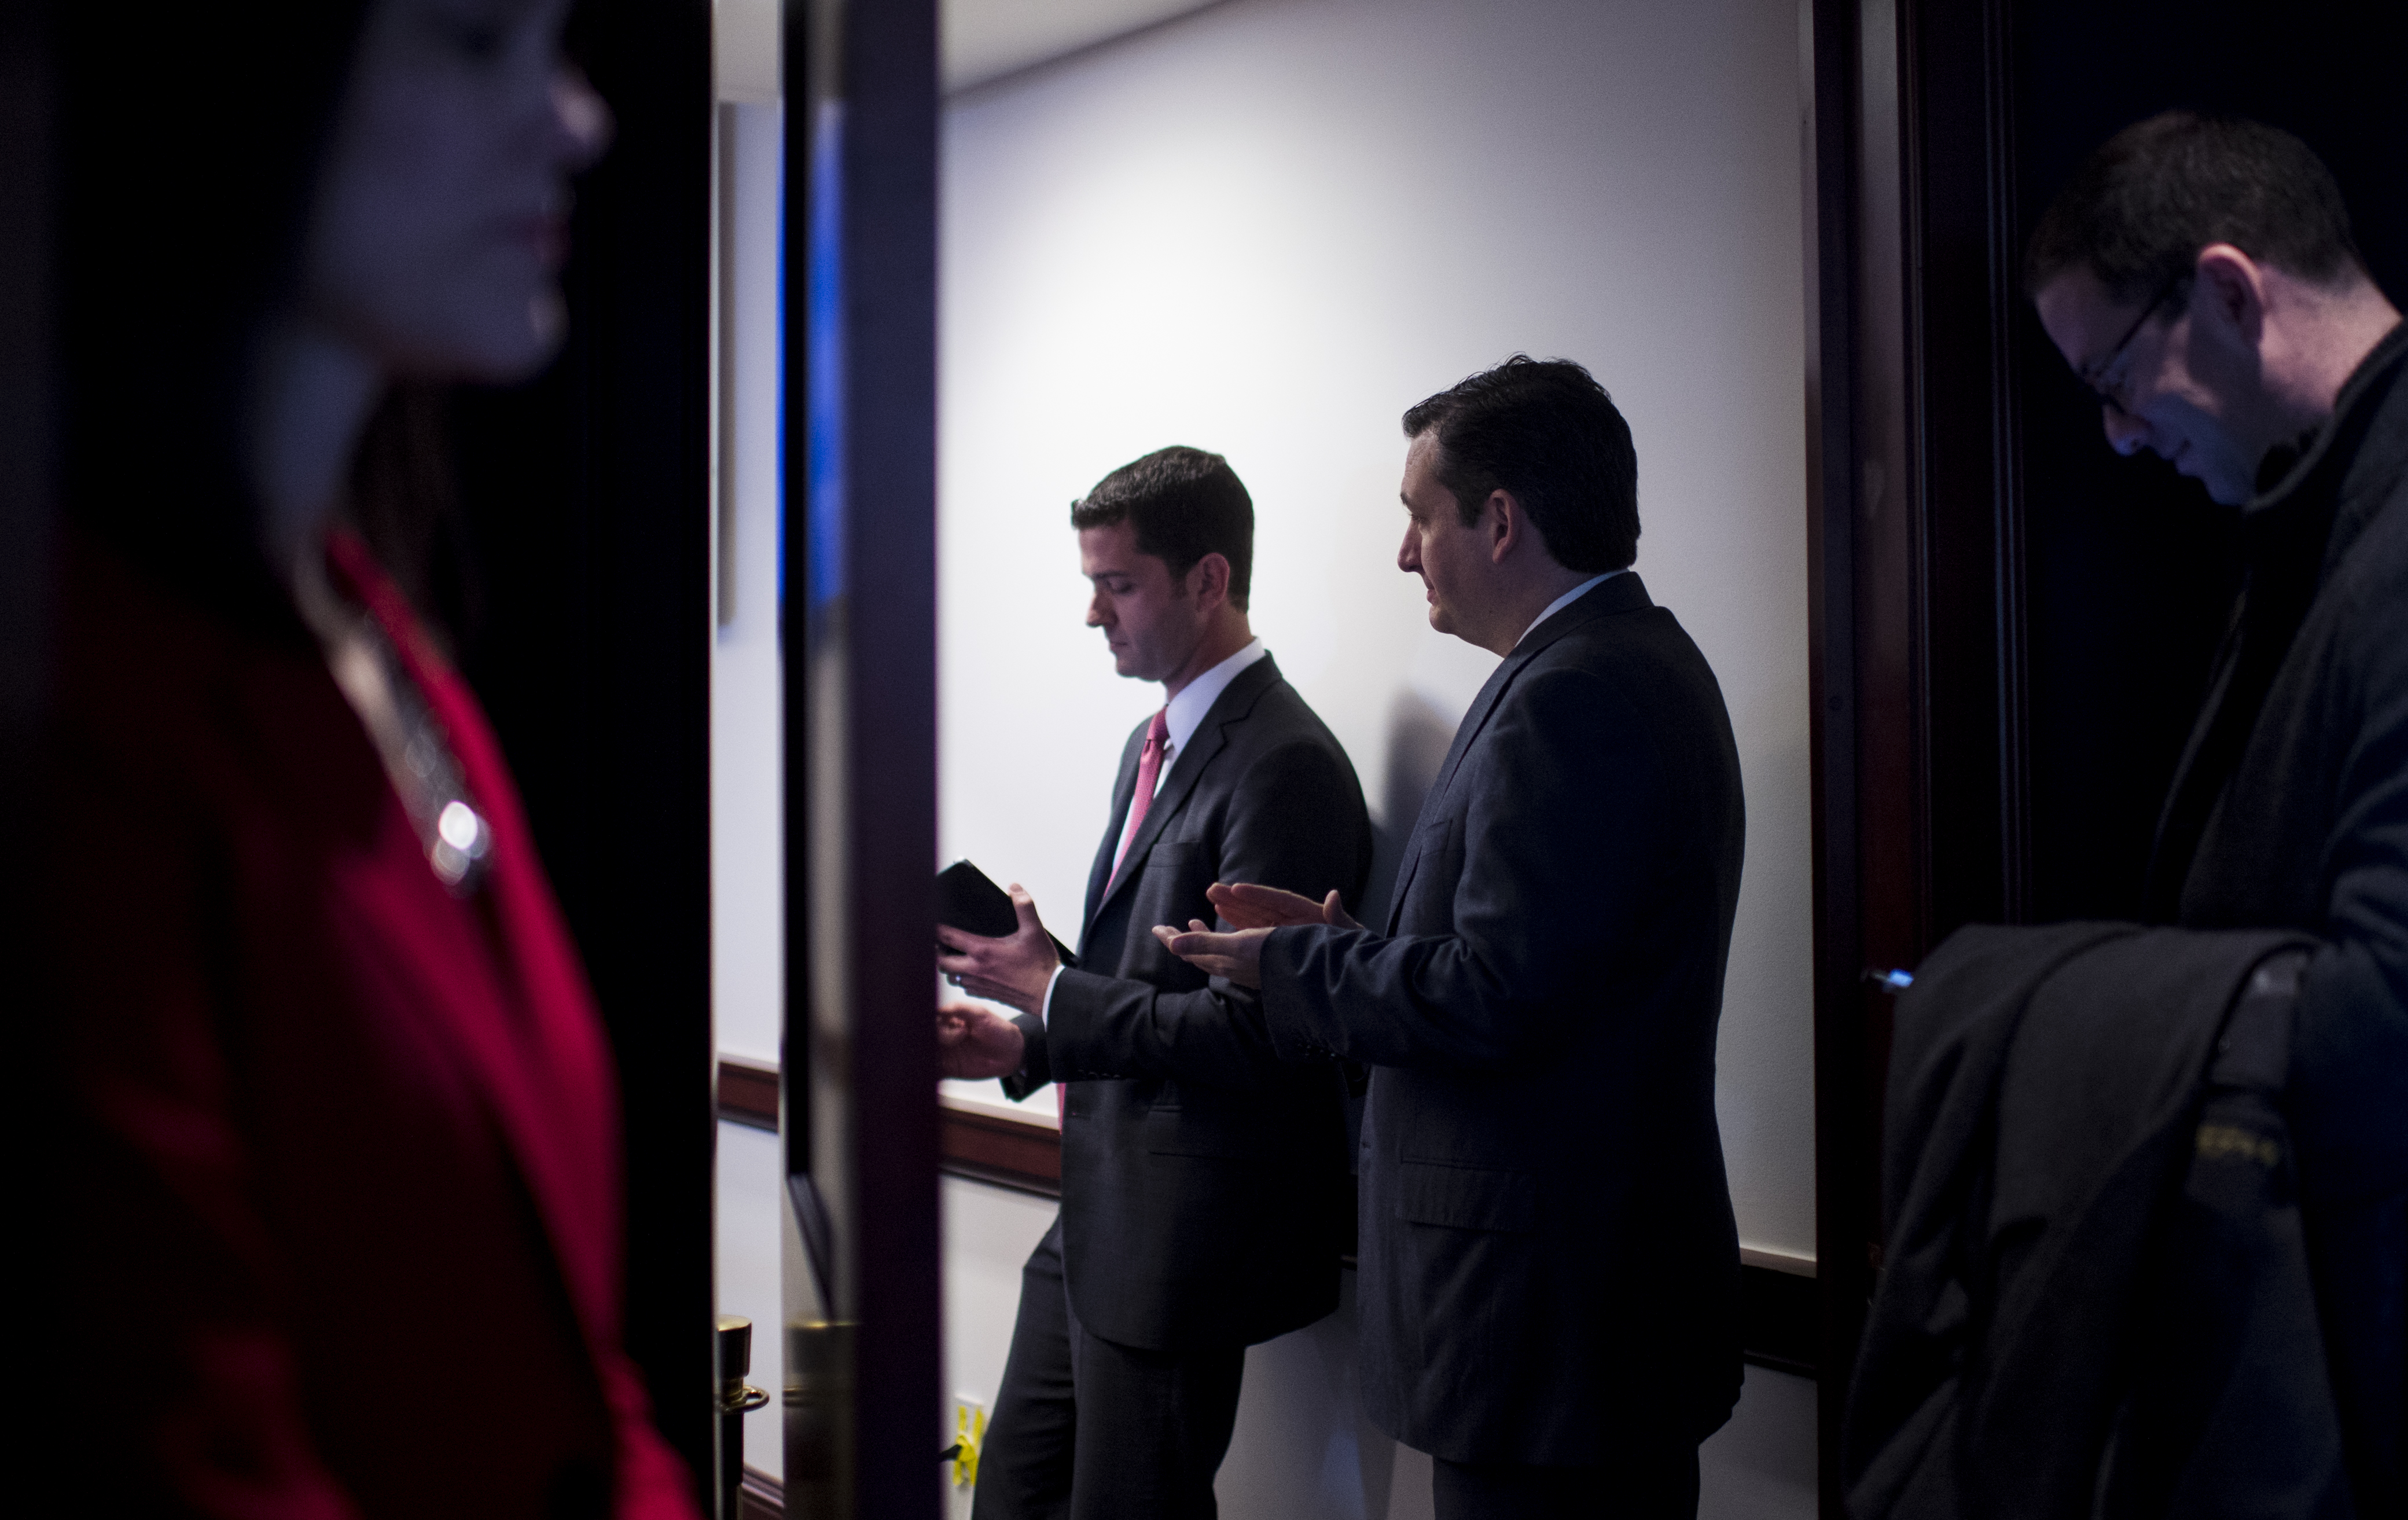 Sen. Ted Cruz (R-Texas) and Heritage Action CEO Mike Needham at the Conservative Policy Summit in Washington on Monday, Feb. 10, 2014.